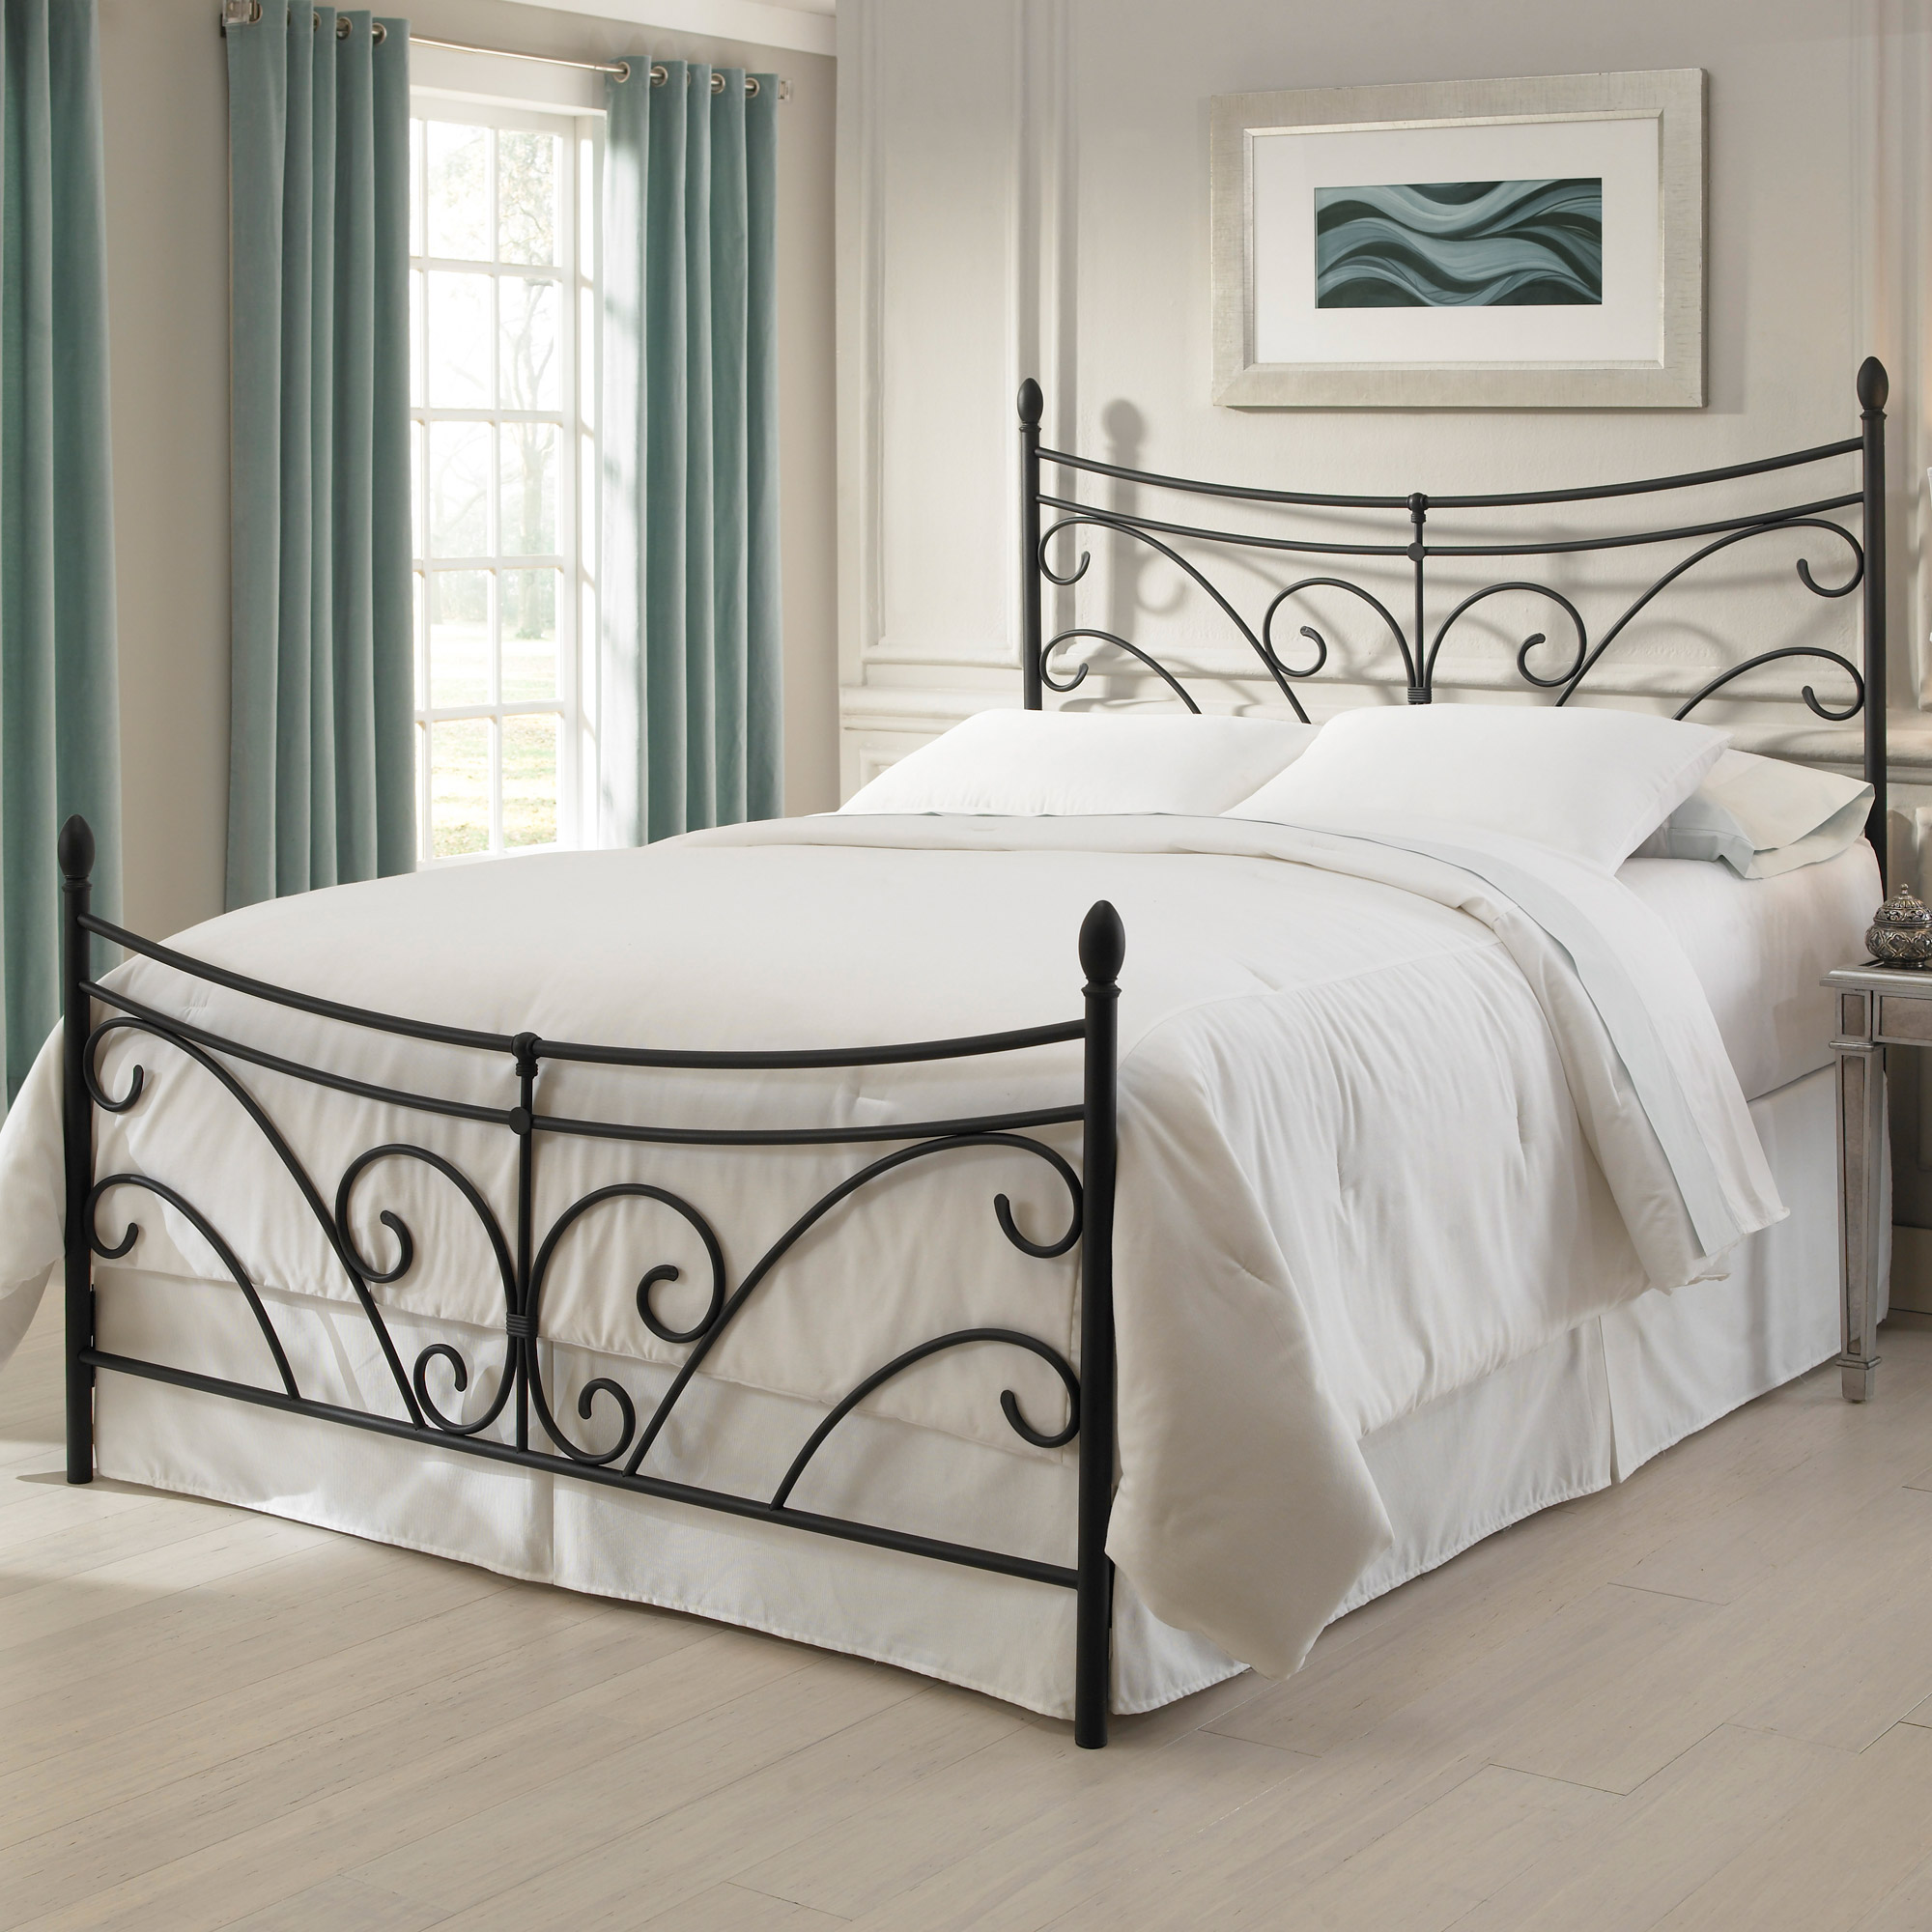 Bergen Iron Headboard Bed Matte Black Curving Scroll Design